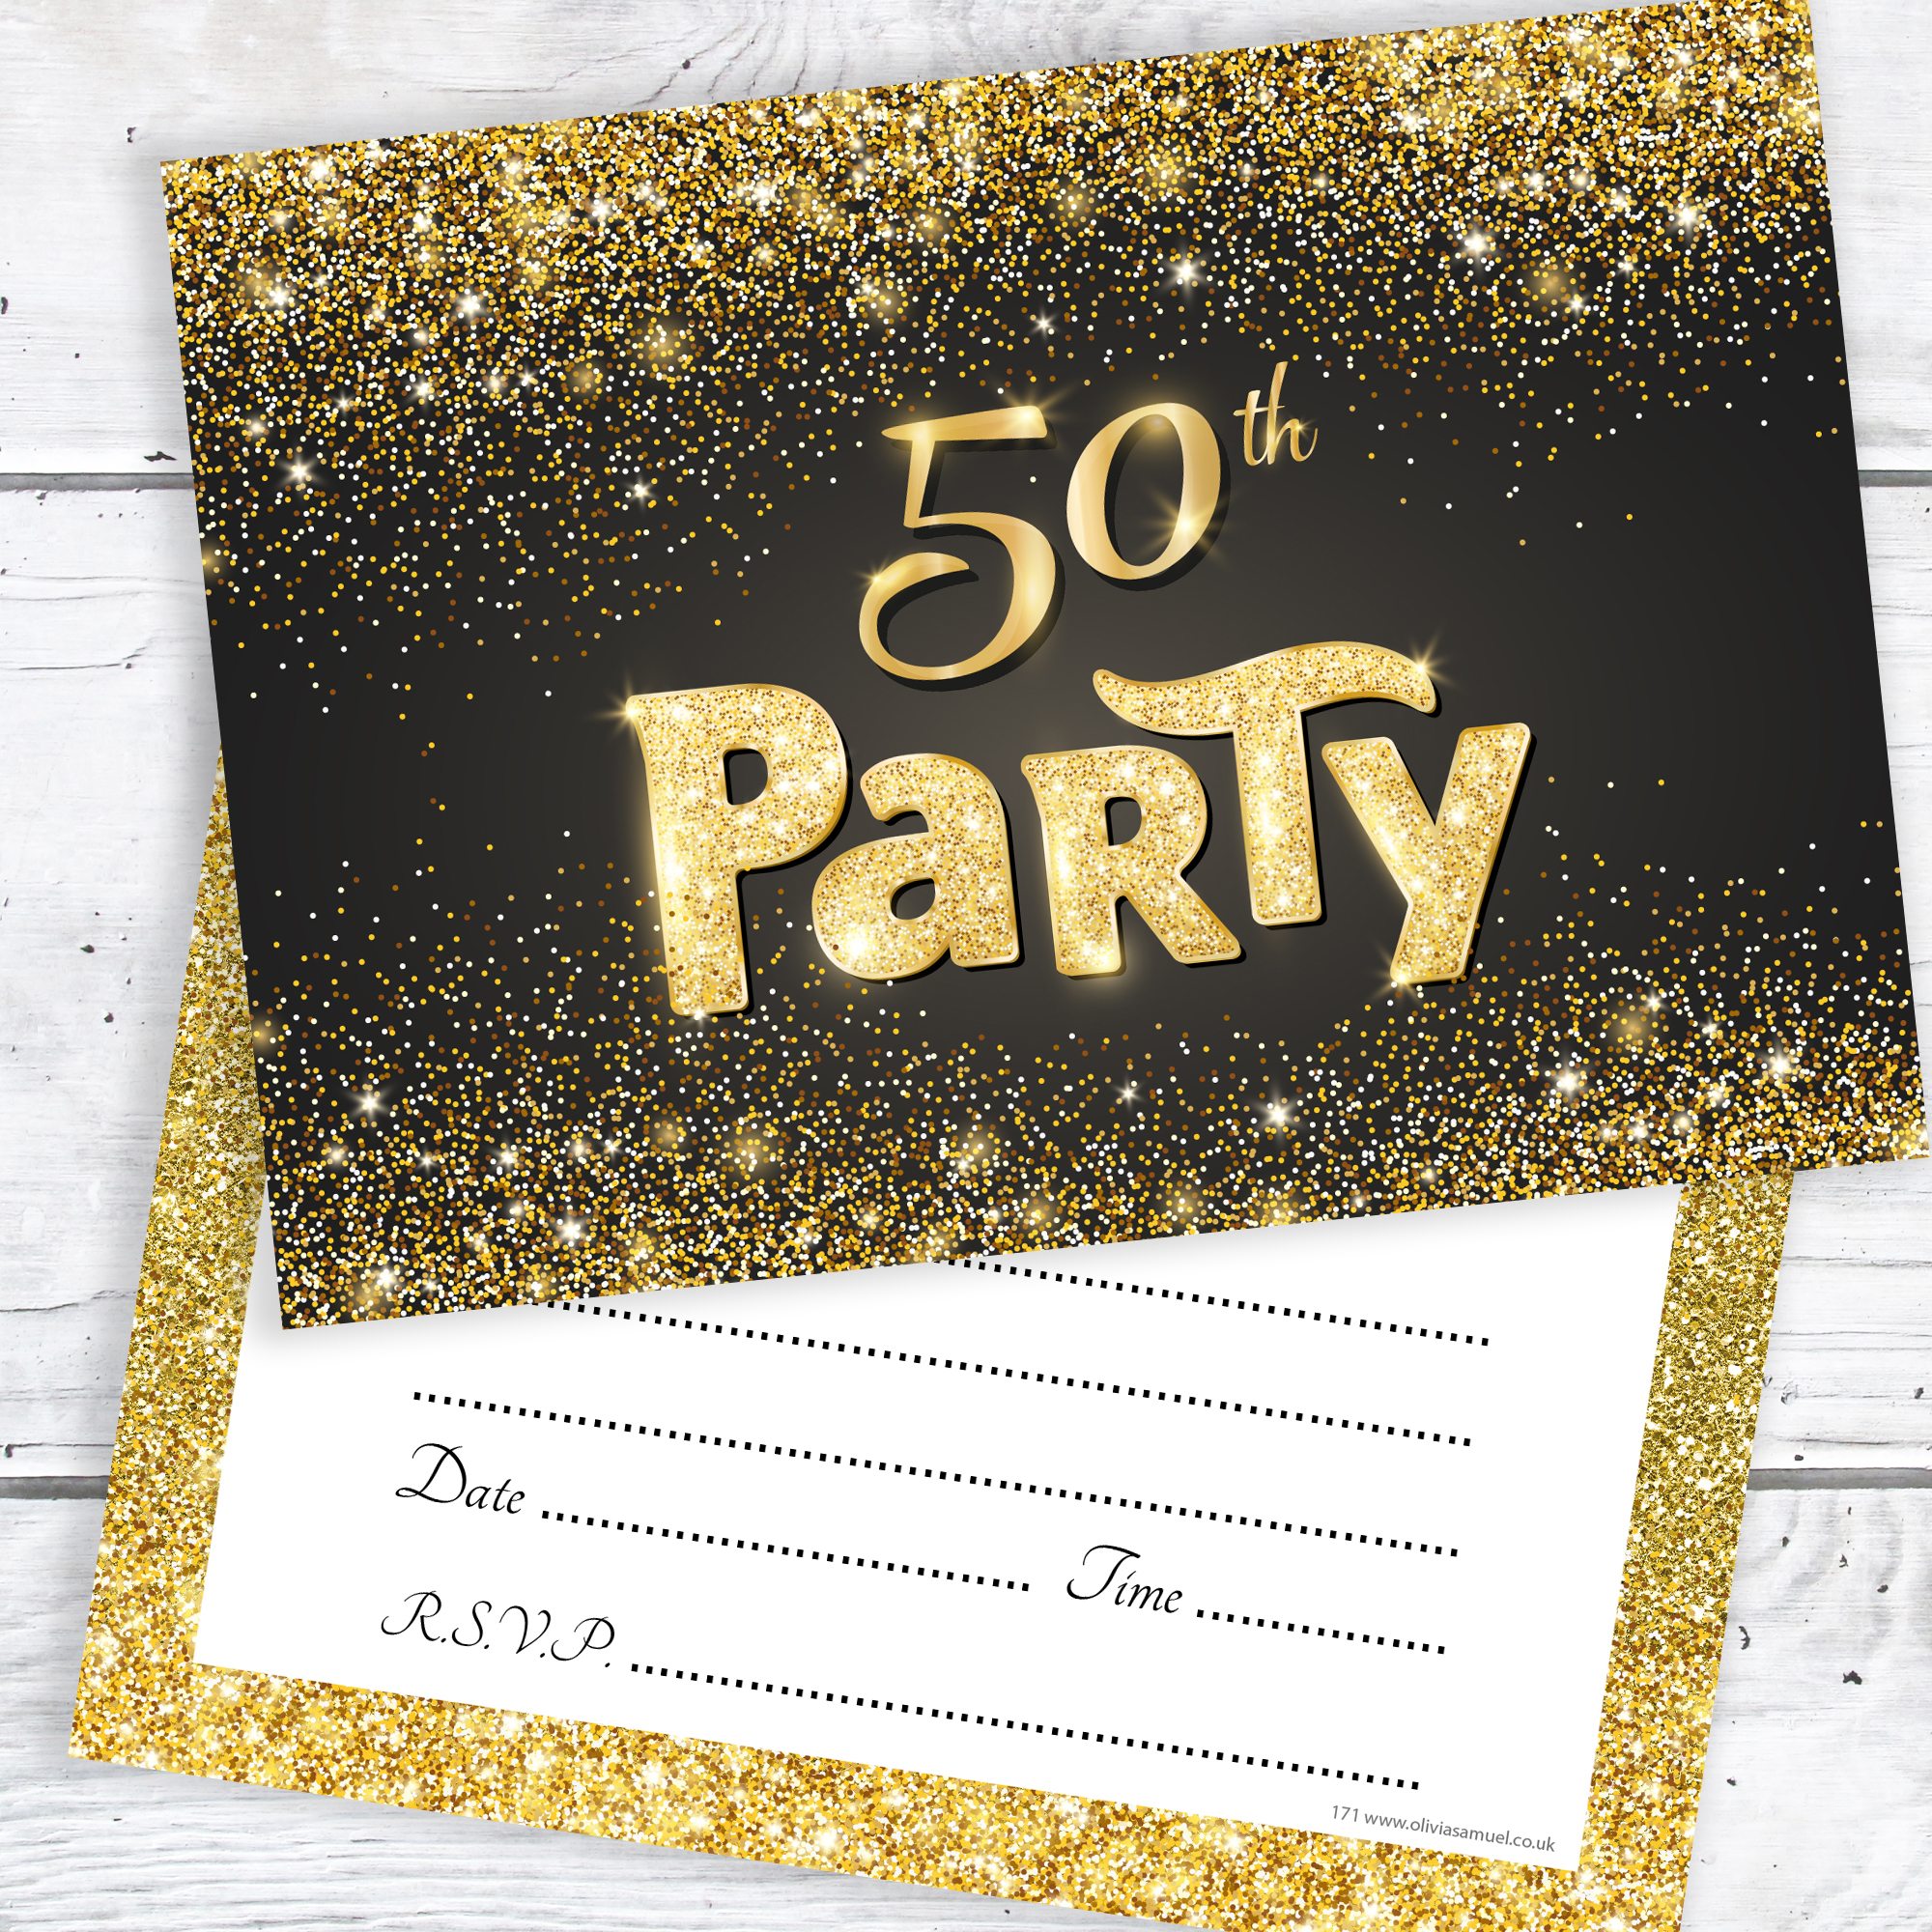 50th party invites - Ozil.almanoof.co